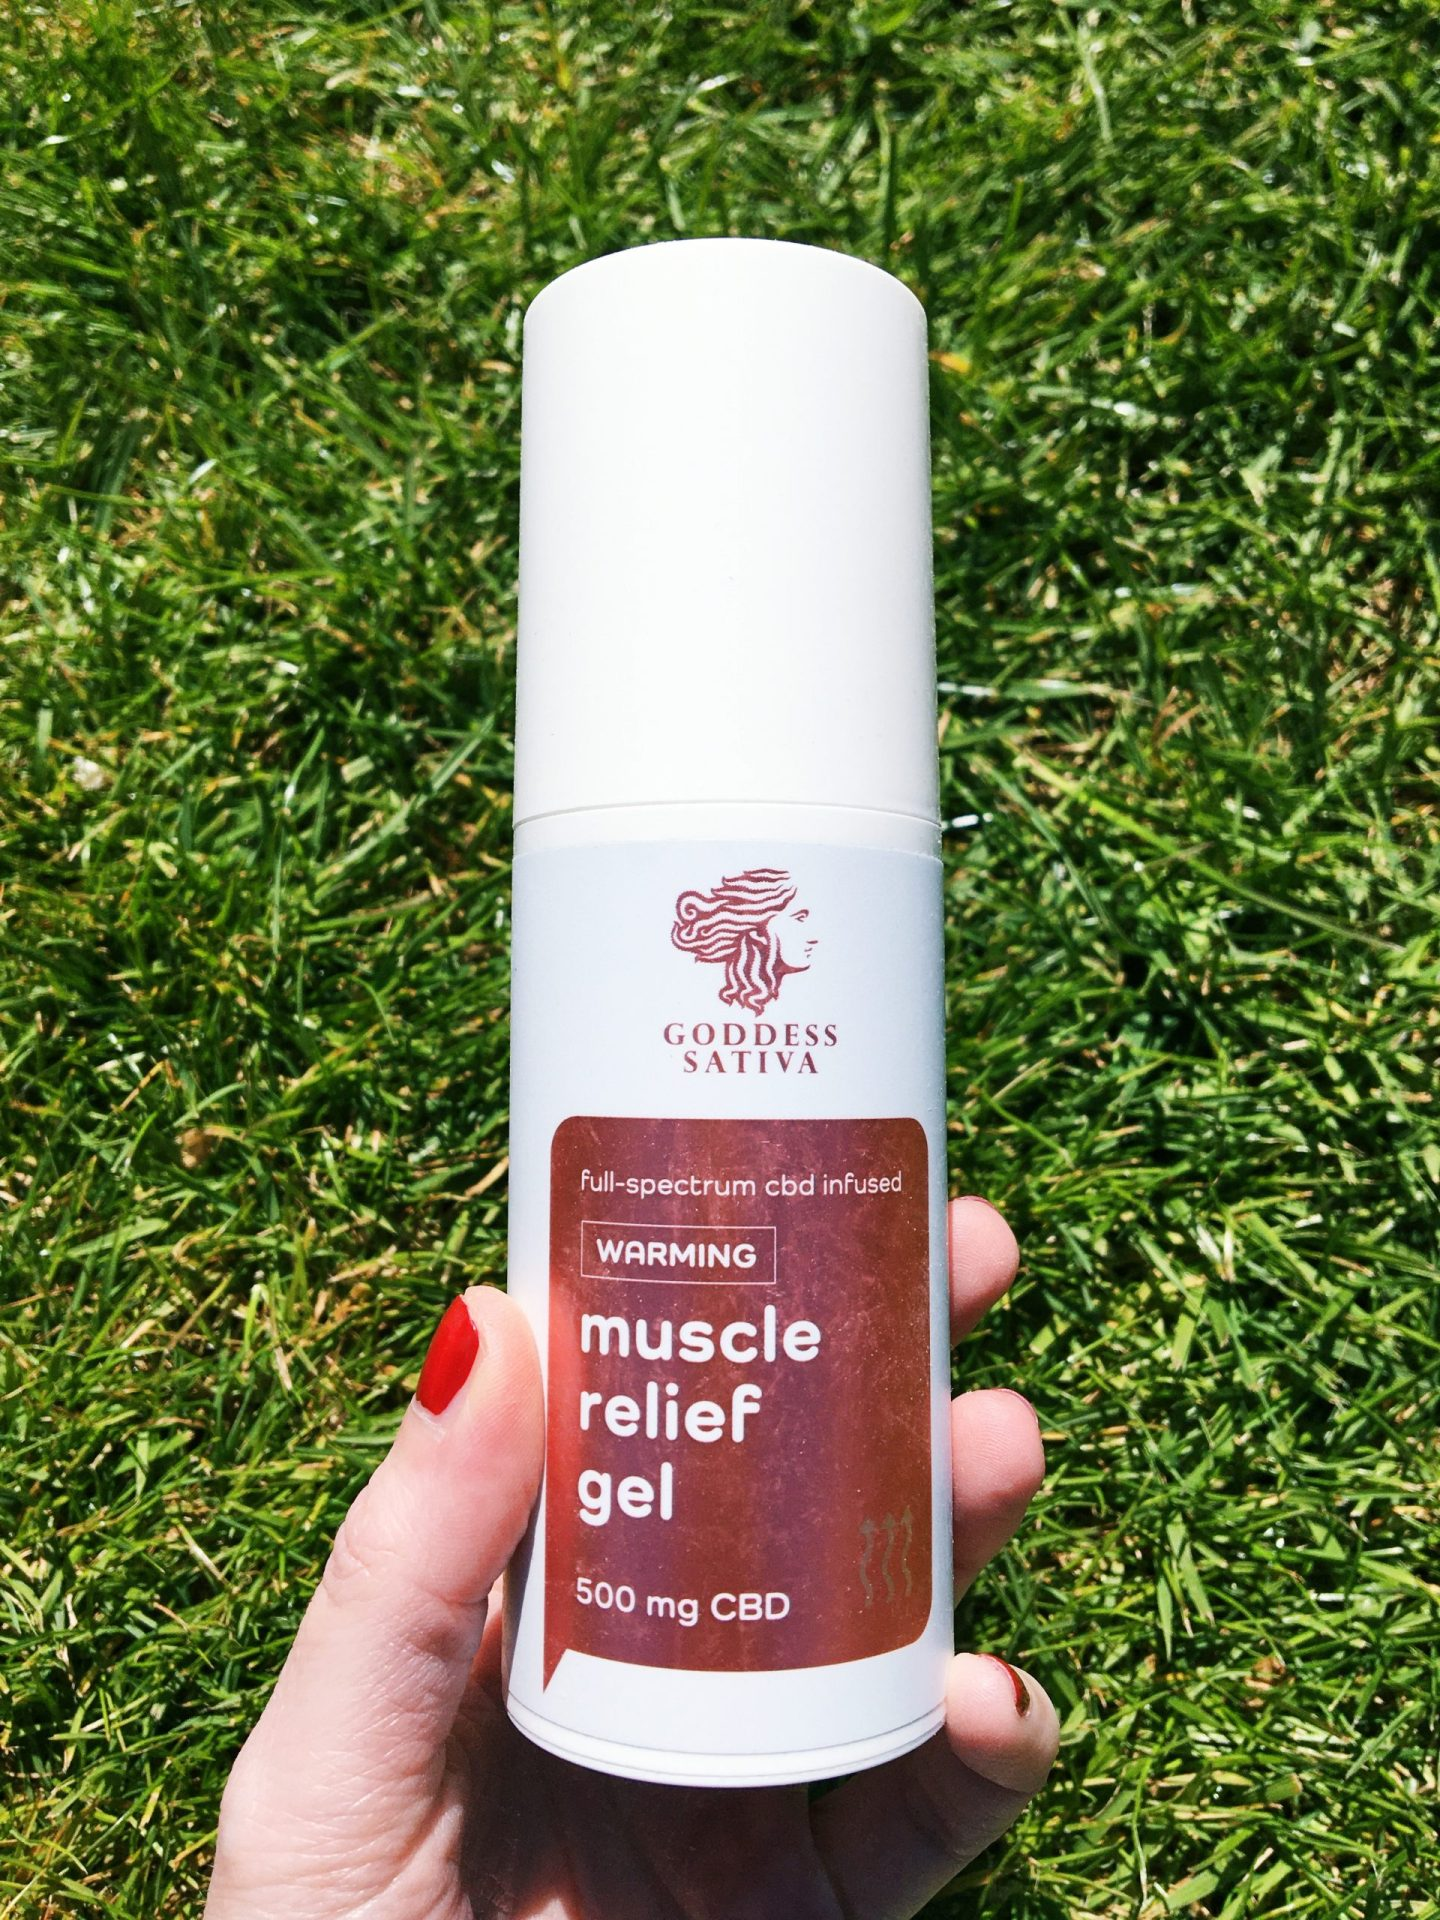 Me holding the muscle relief gel. It's a white bottle with a shiny pin label on the front.